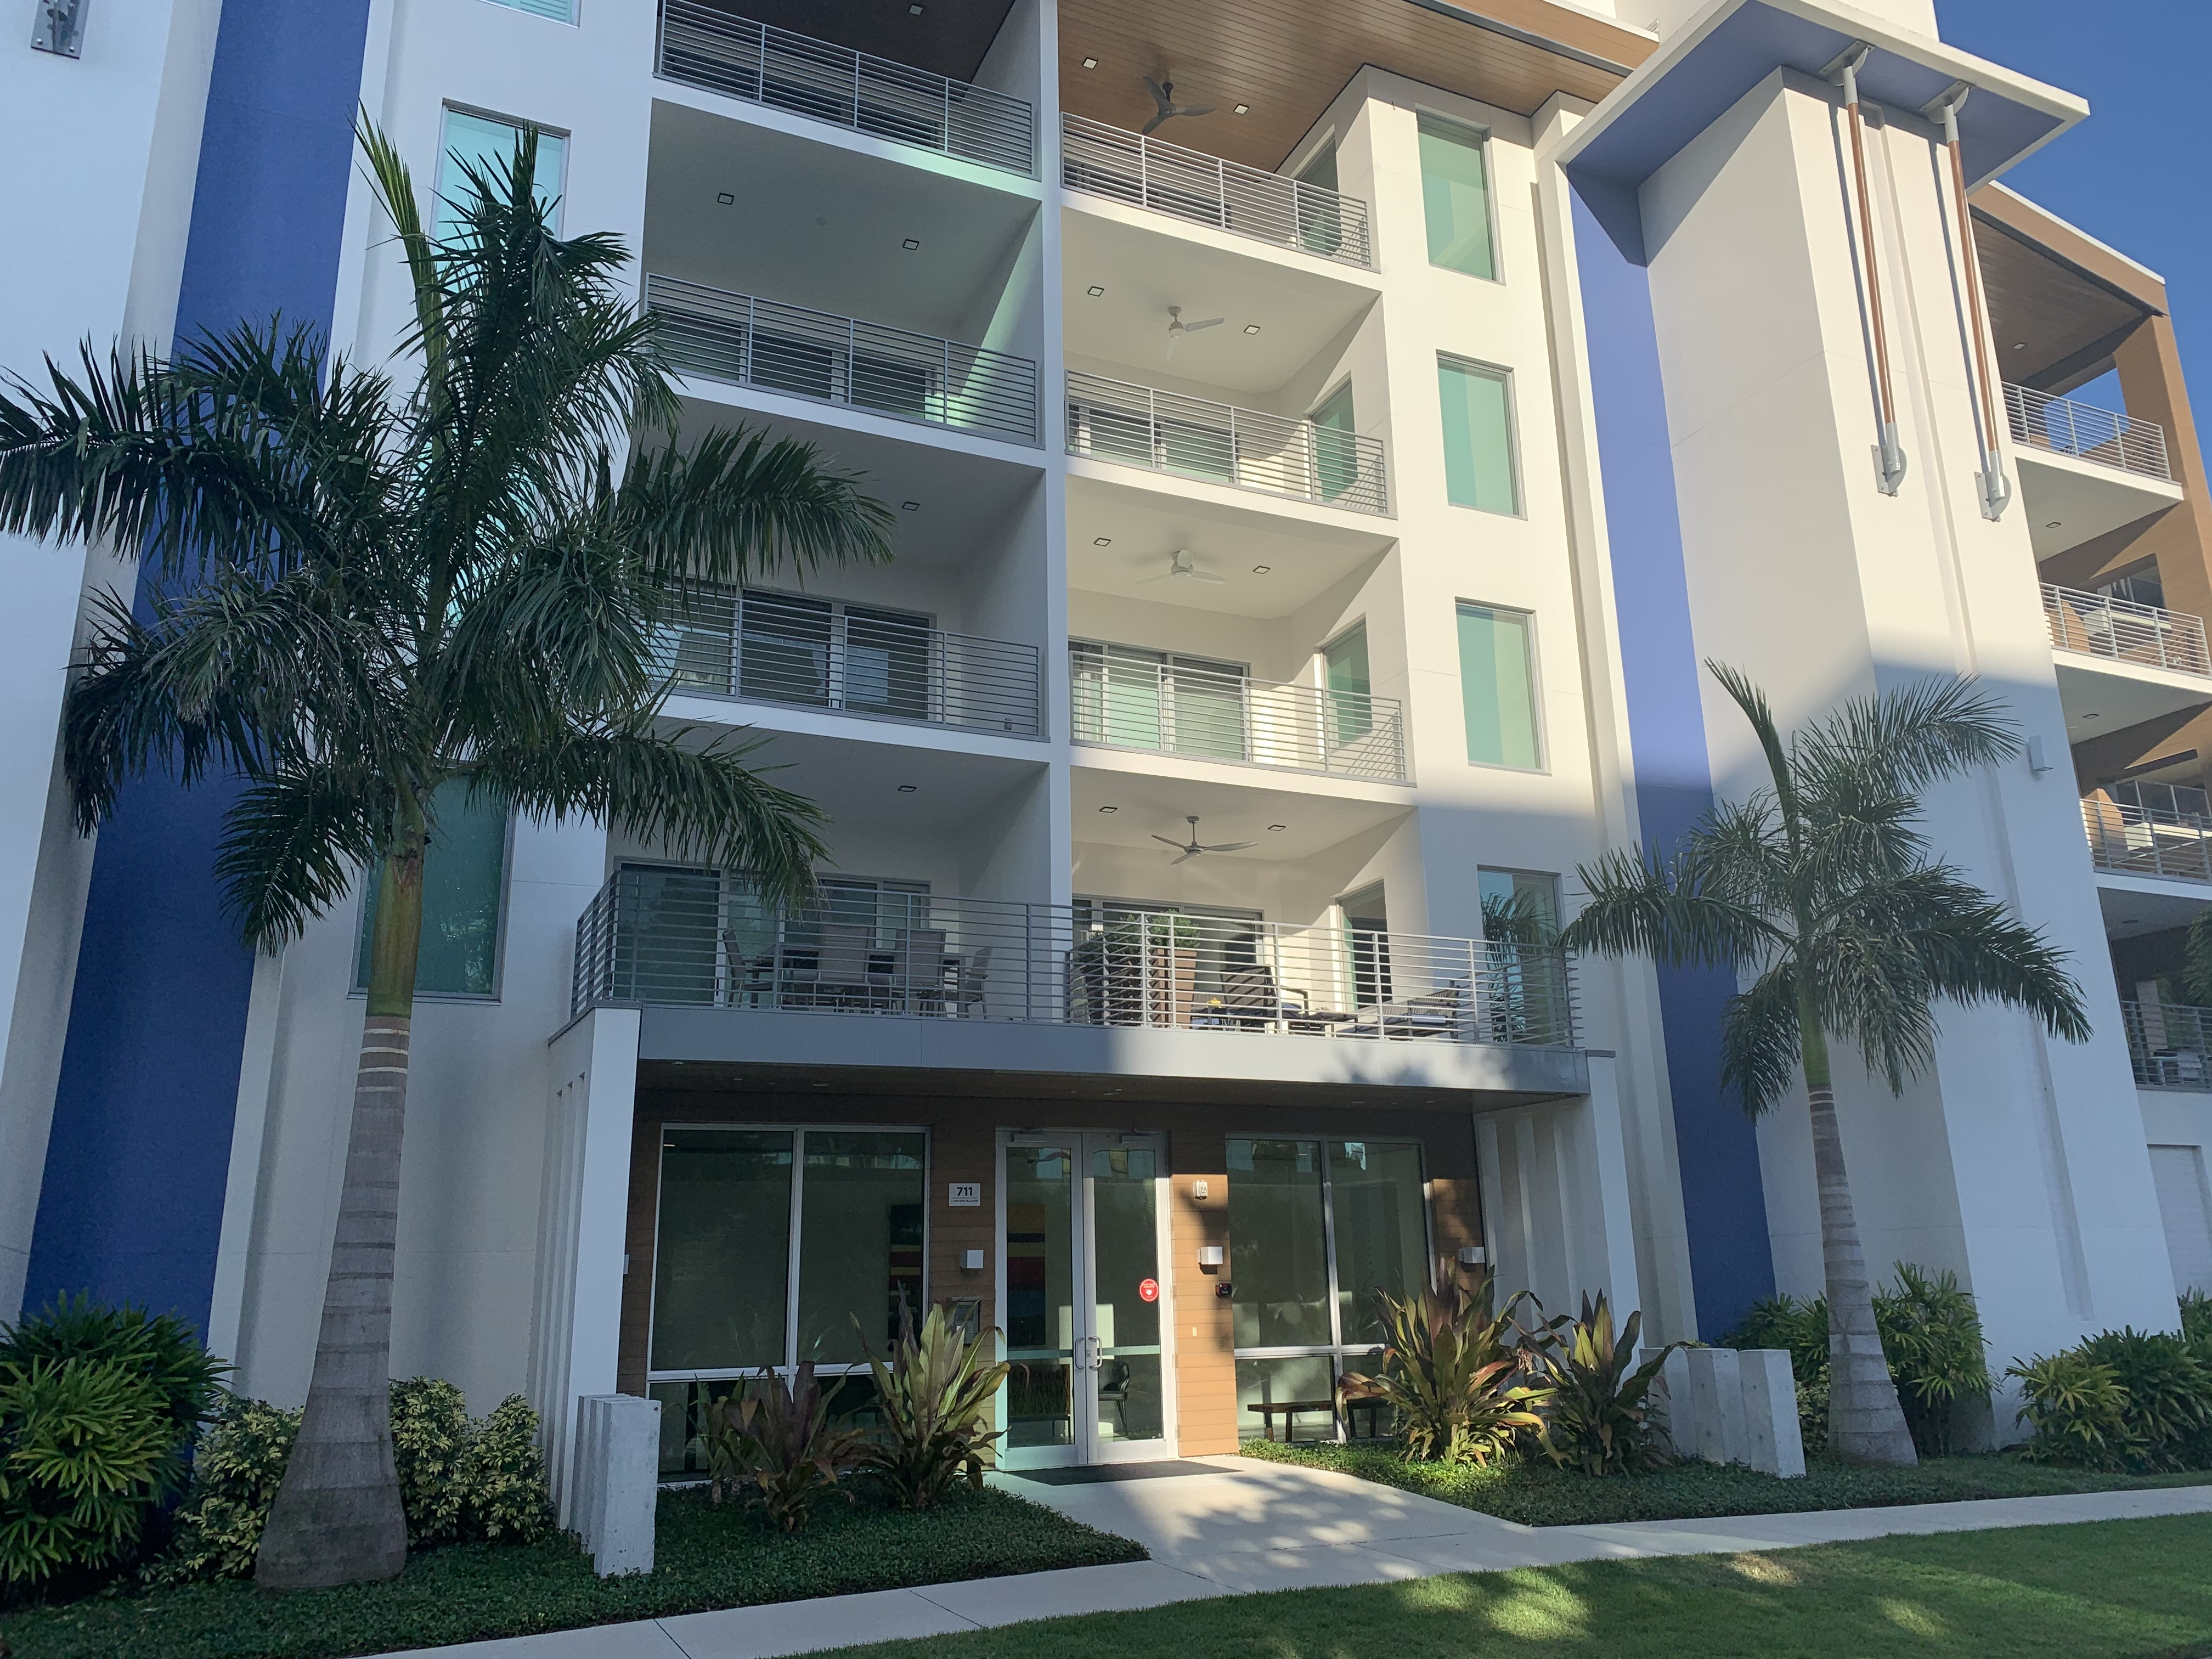 711 Palm - Condos for Sale in Downtown Sarasota